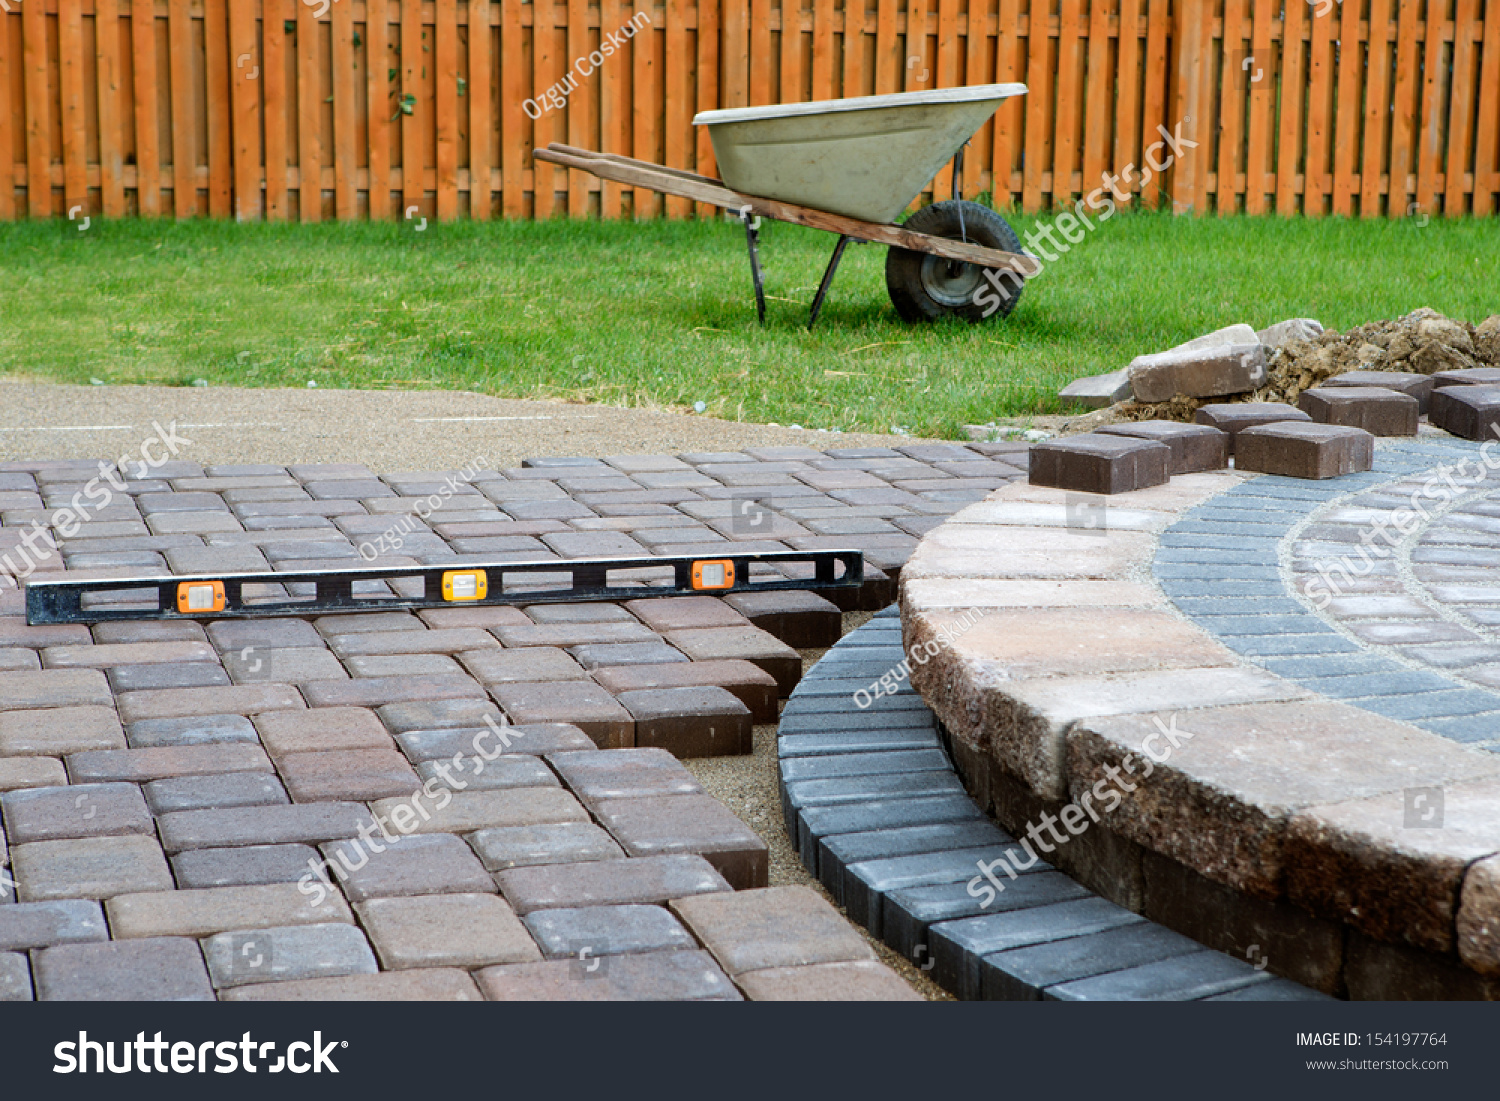 When Building A Patio Prepare To Use Level And Barrel. Patio Layout Software Free. Backyard Patio Cover Plans. Patio Pavers Pictures. Patio Swing Replacement Cushions Canada